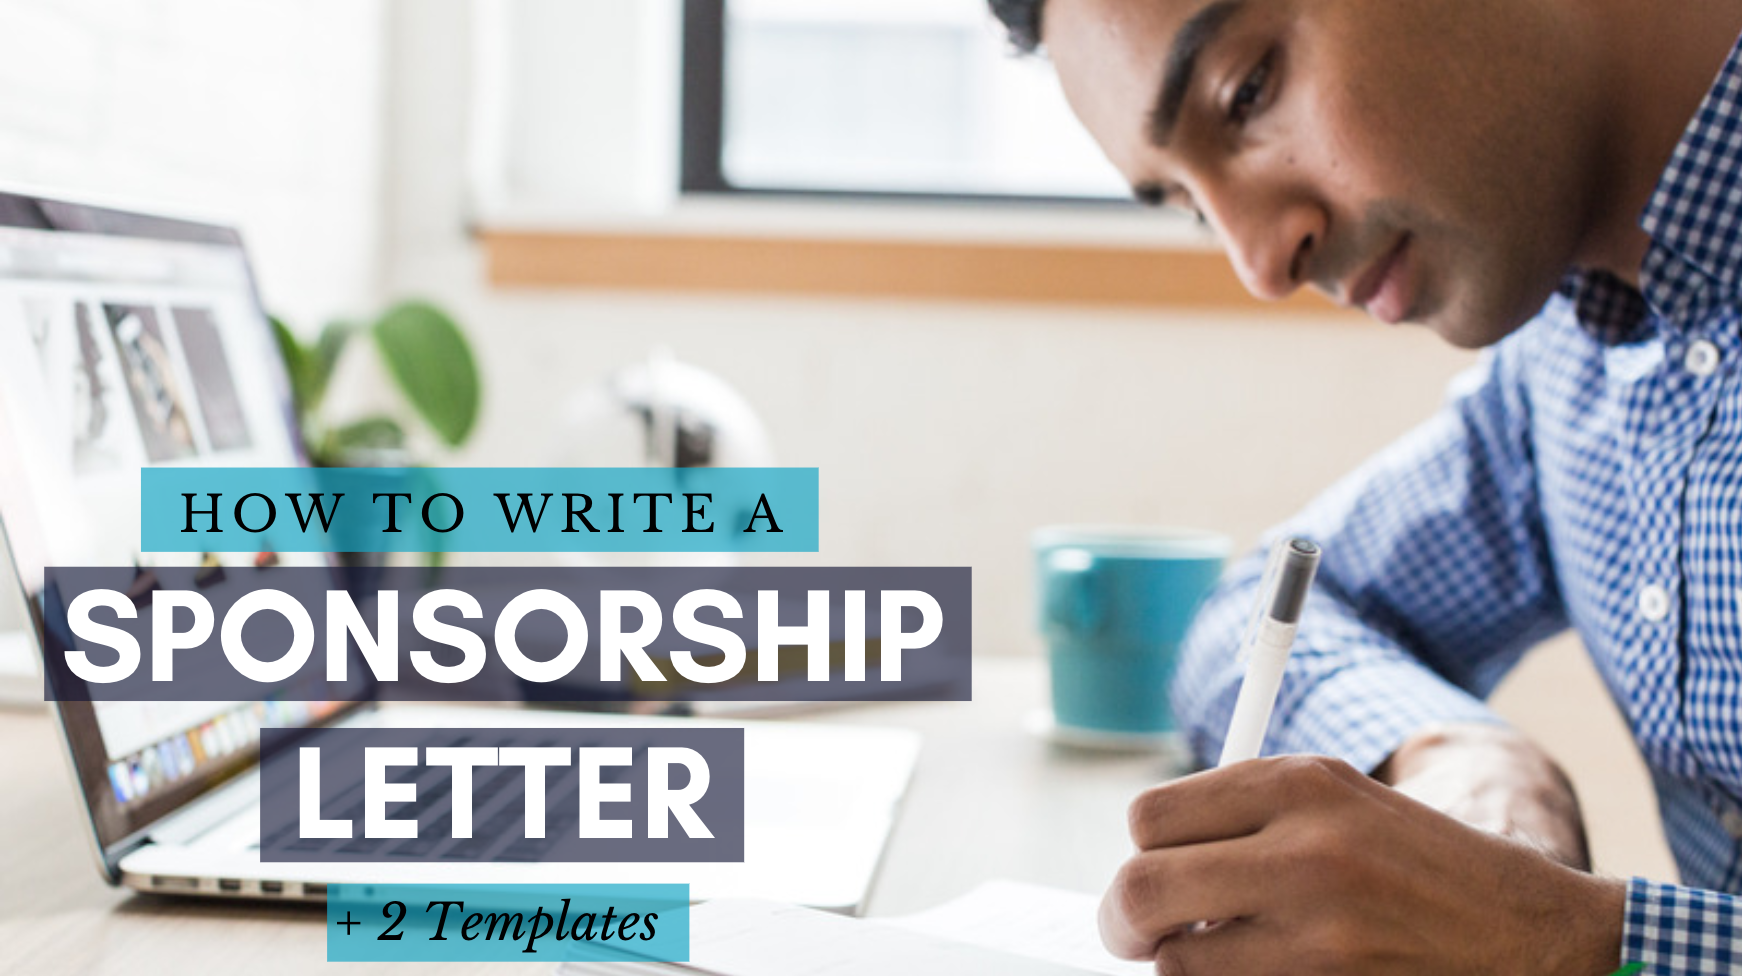 How to Write a Sponsorship Letter (+ 2 Templates) | Wild